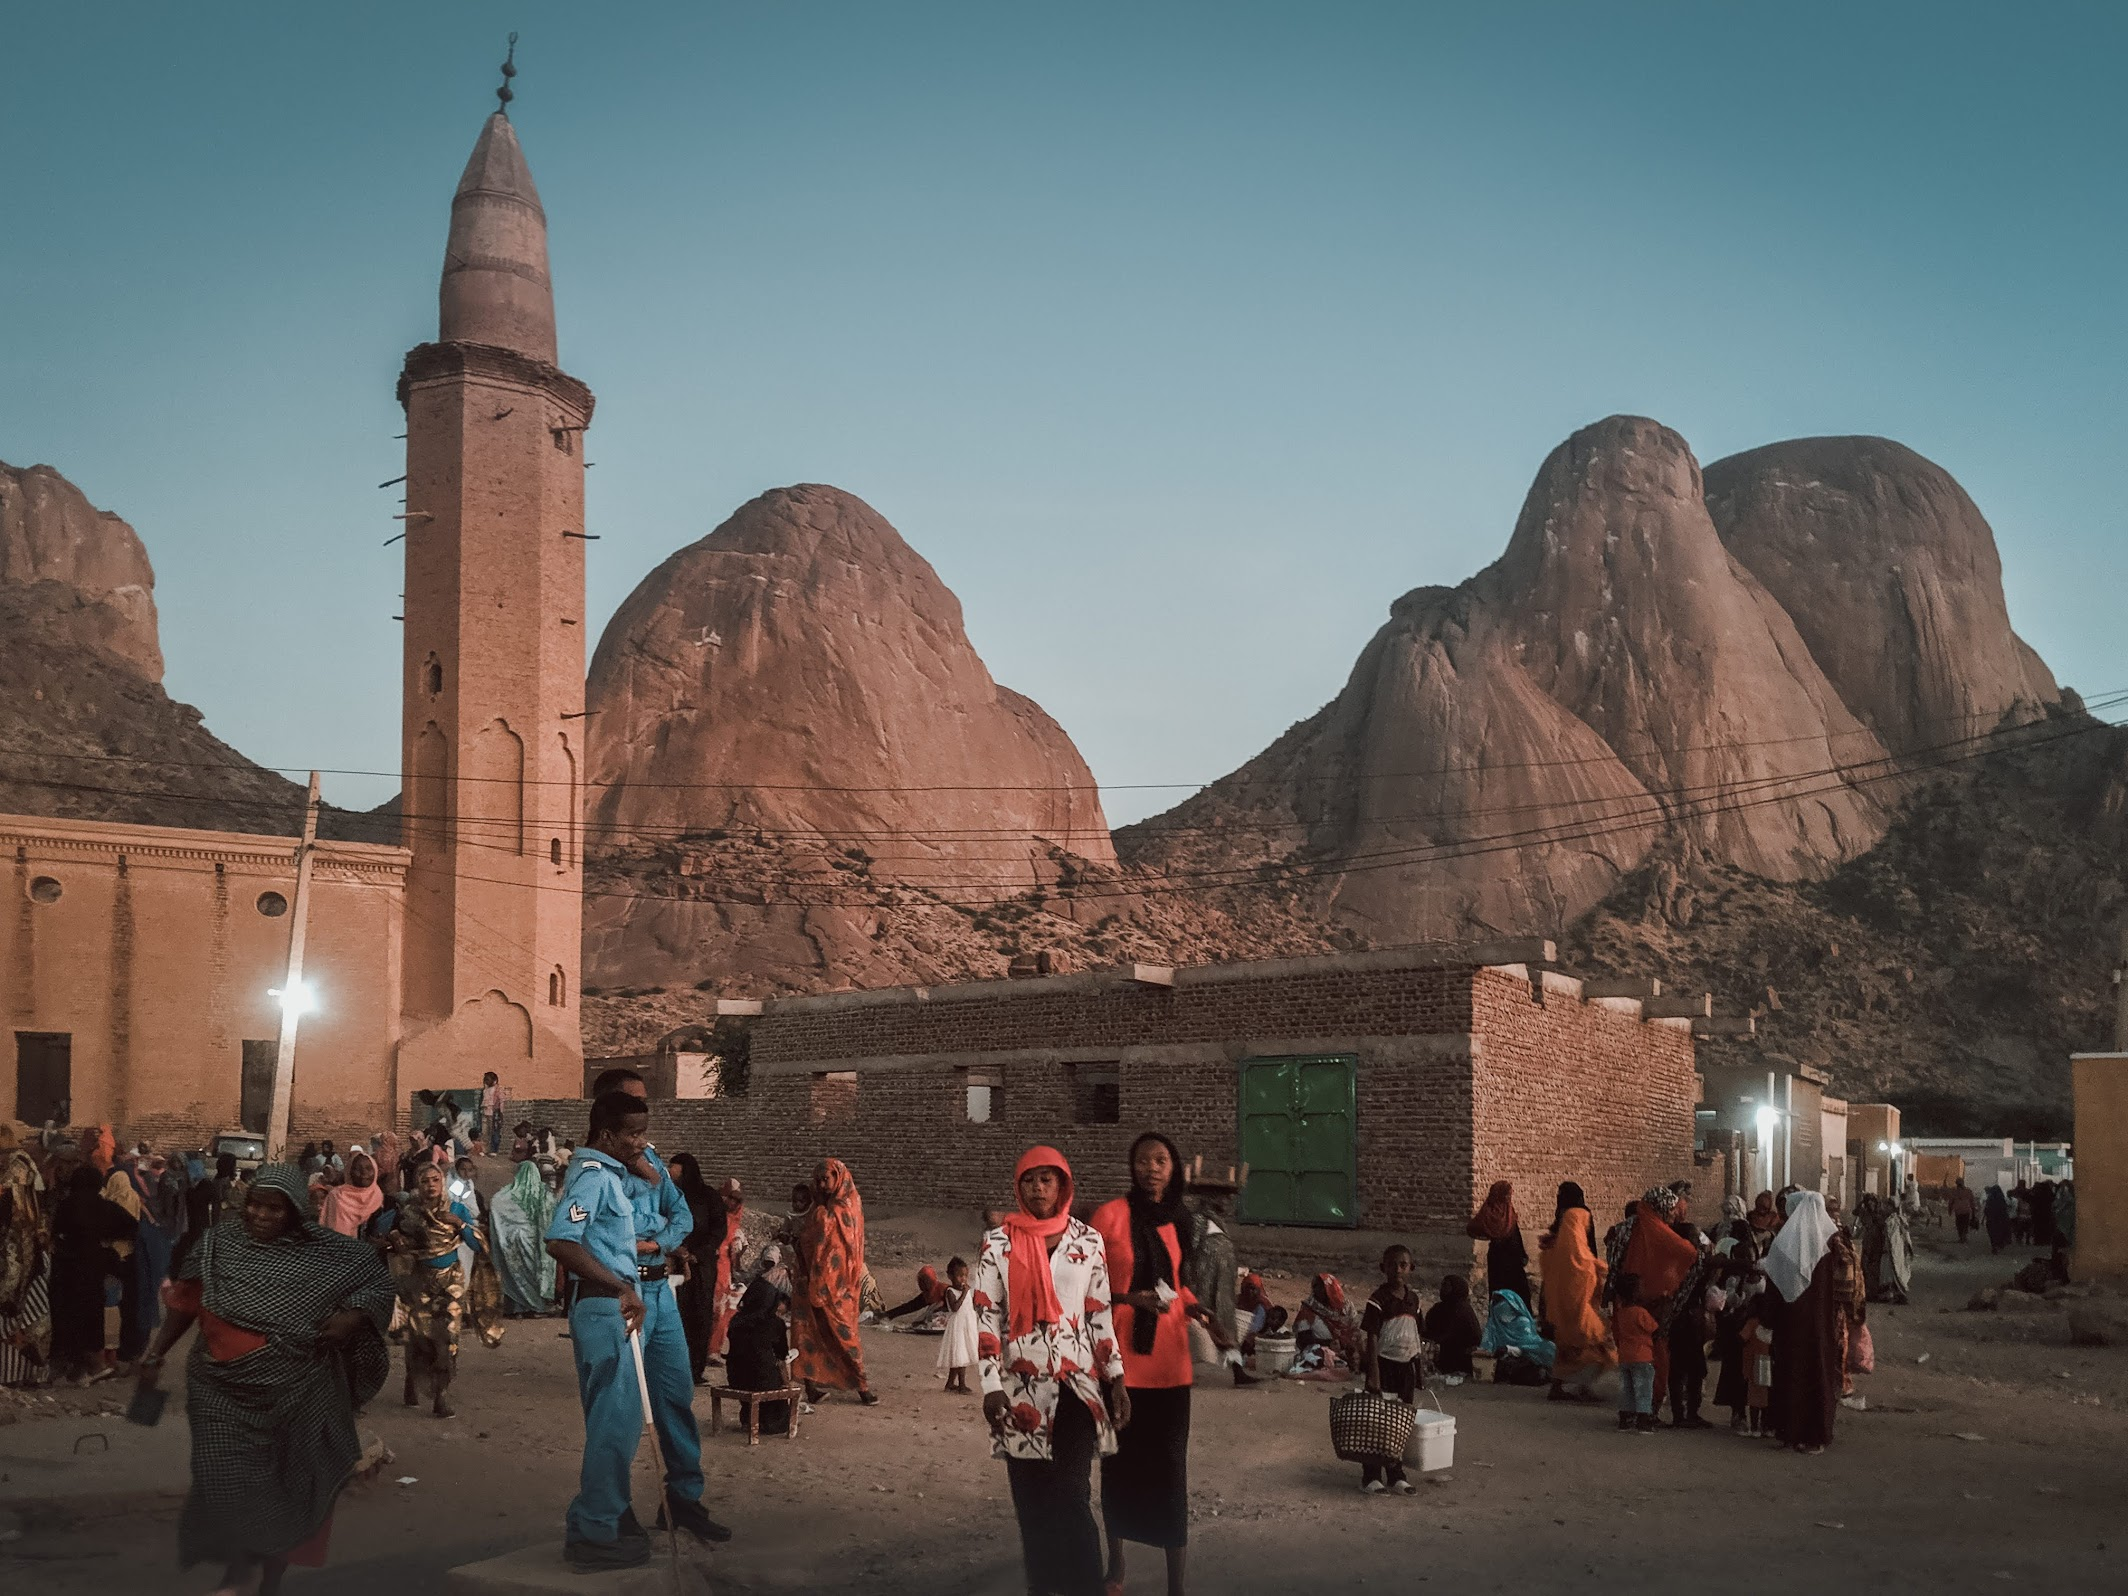 The mosque in Kassala